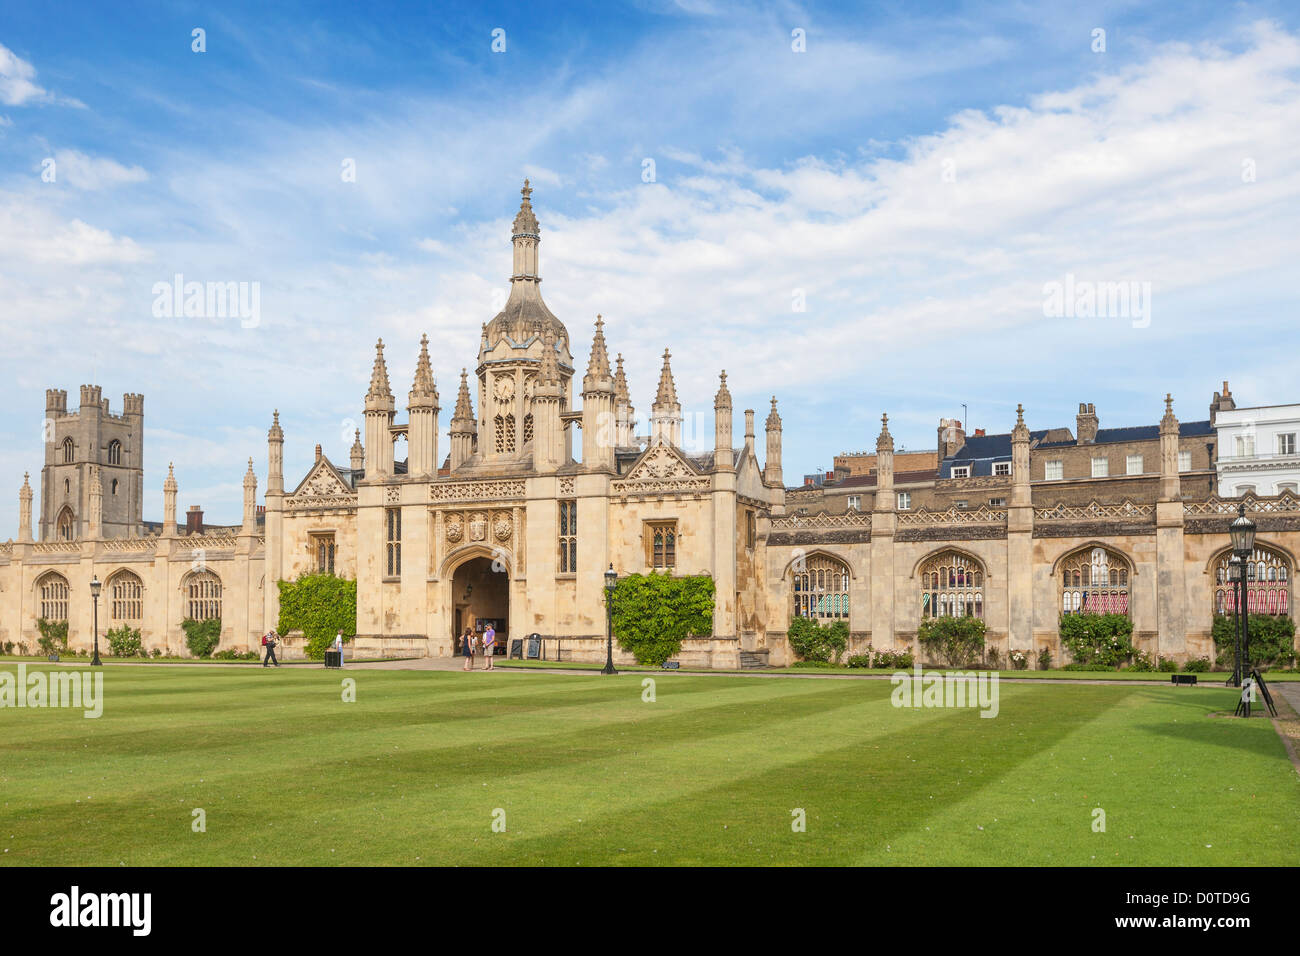 King's college gatehouse viewed from the front court, Cambridge, England - Stock Image